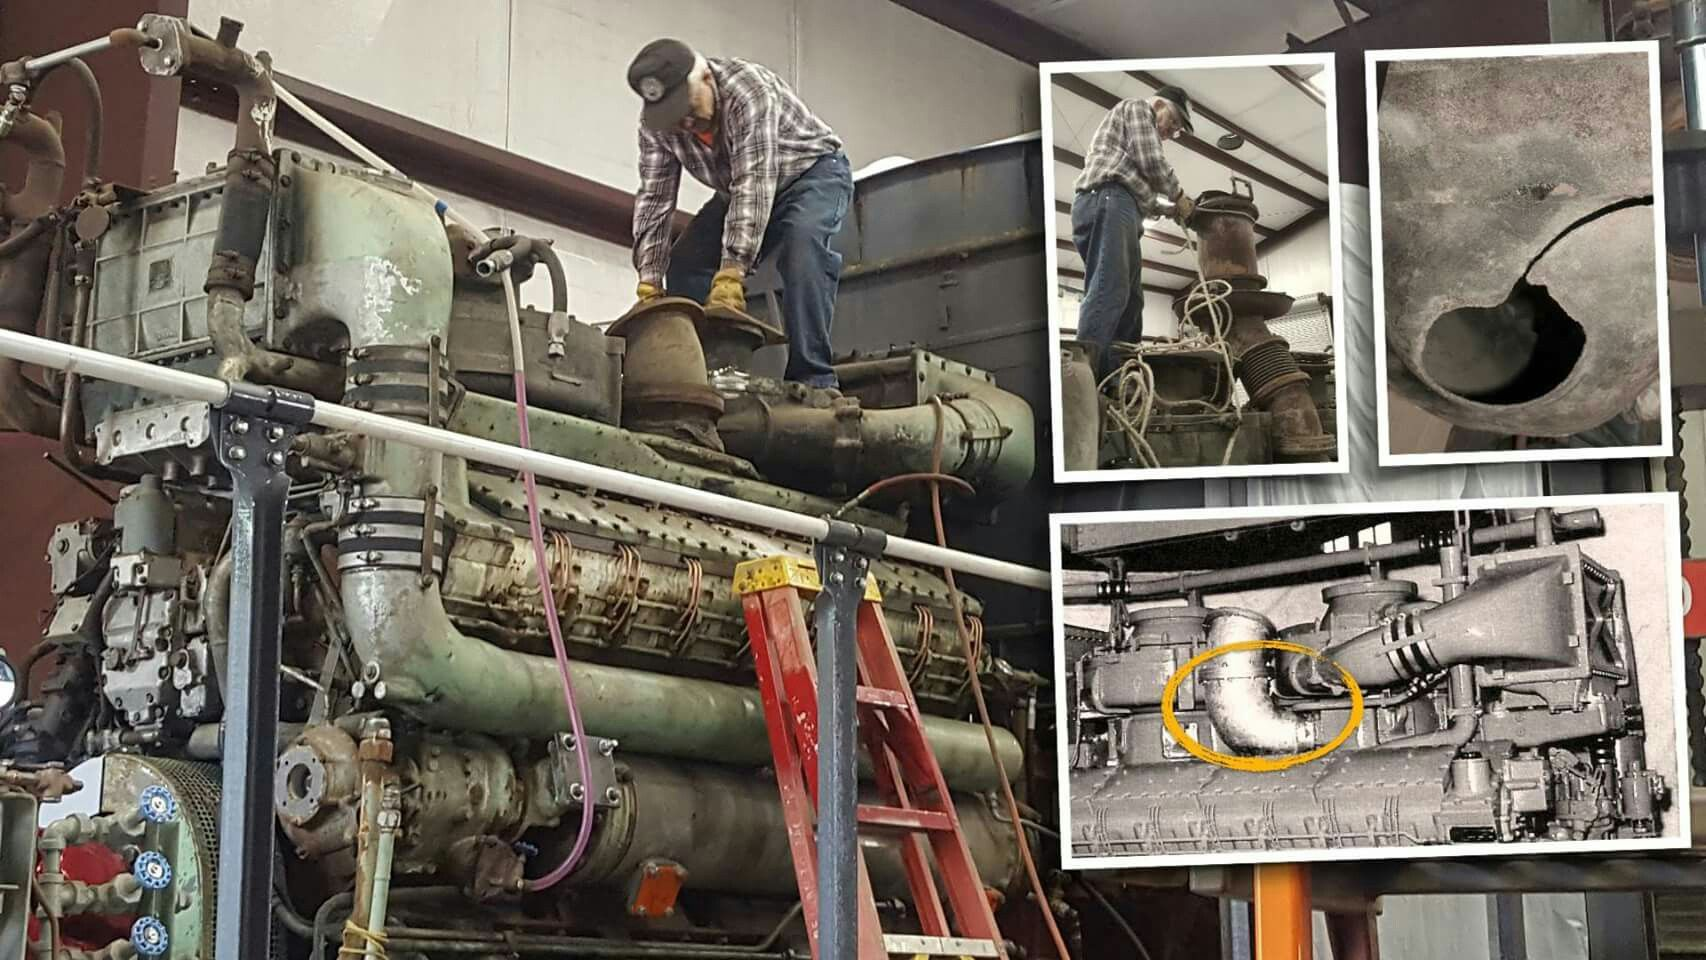 medium resolution of sp 9010 crew chief howard wise on the discoveries from last week s trial starting attempt of the maybach md 870 1 motor serial 91168